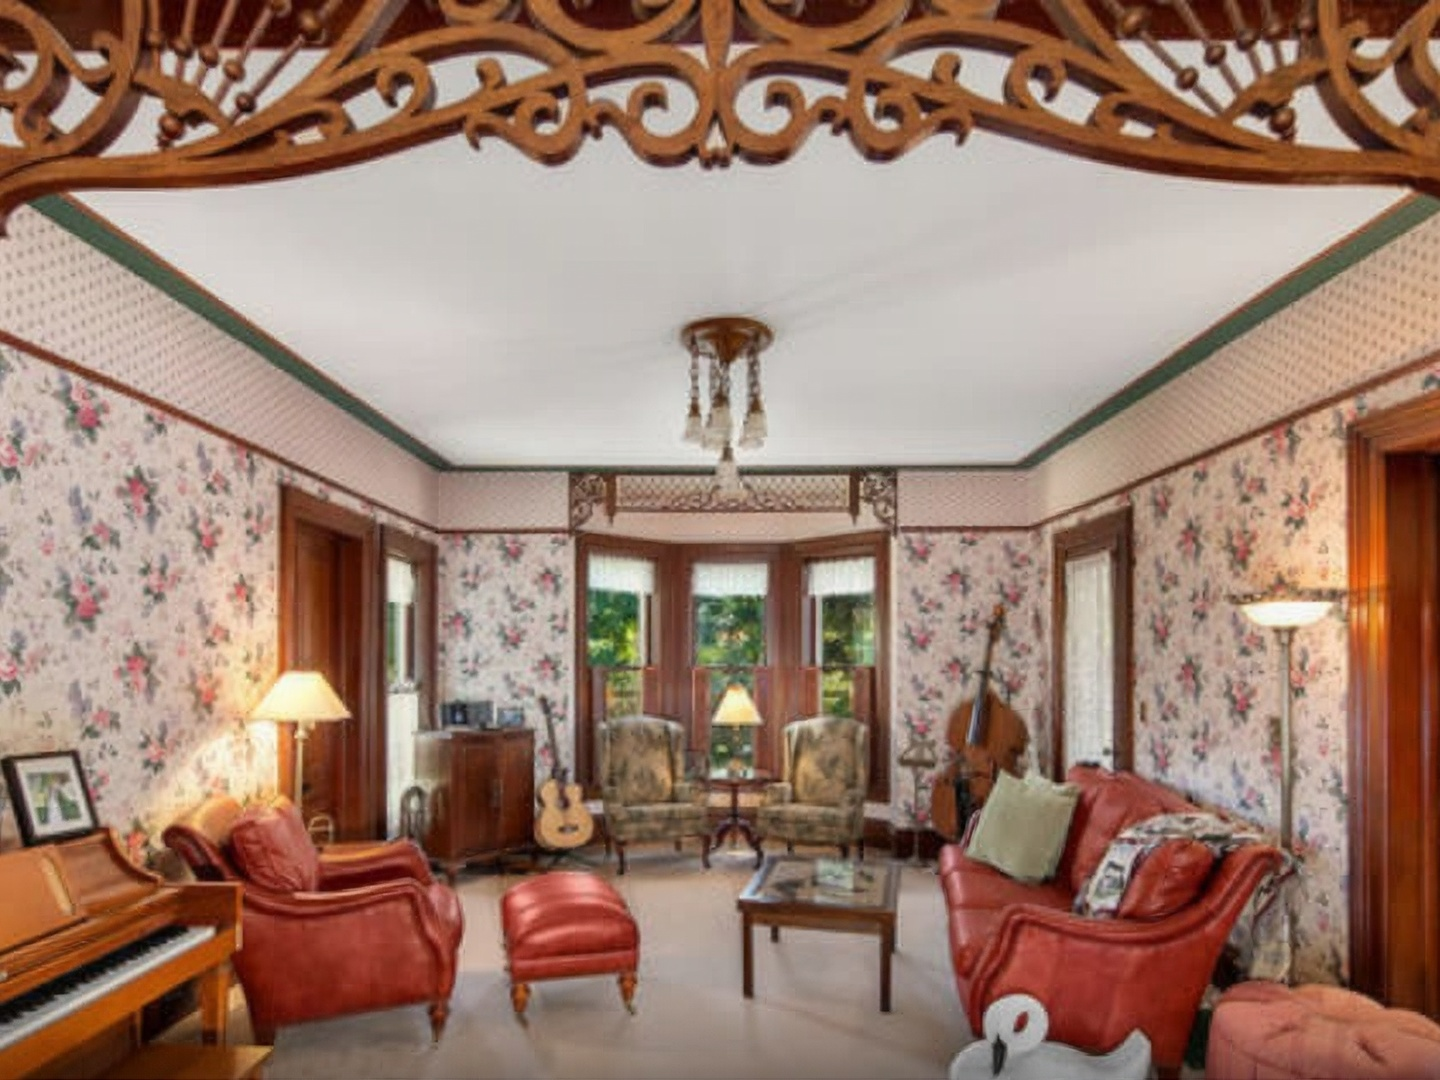 A living room filled with furniture and a large window at White Swan Inn B&B.